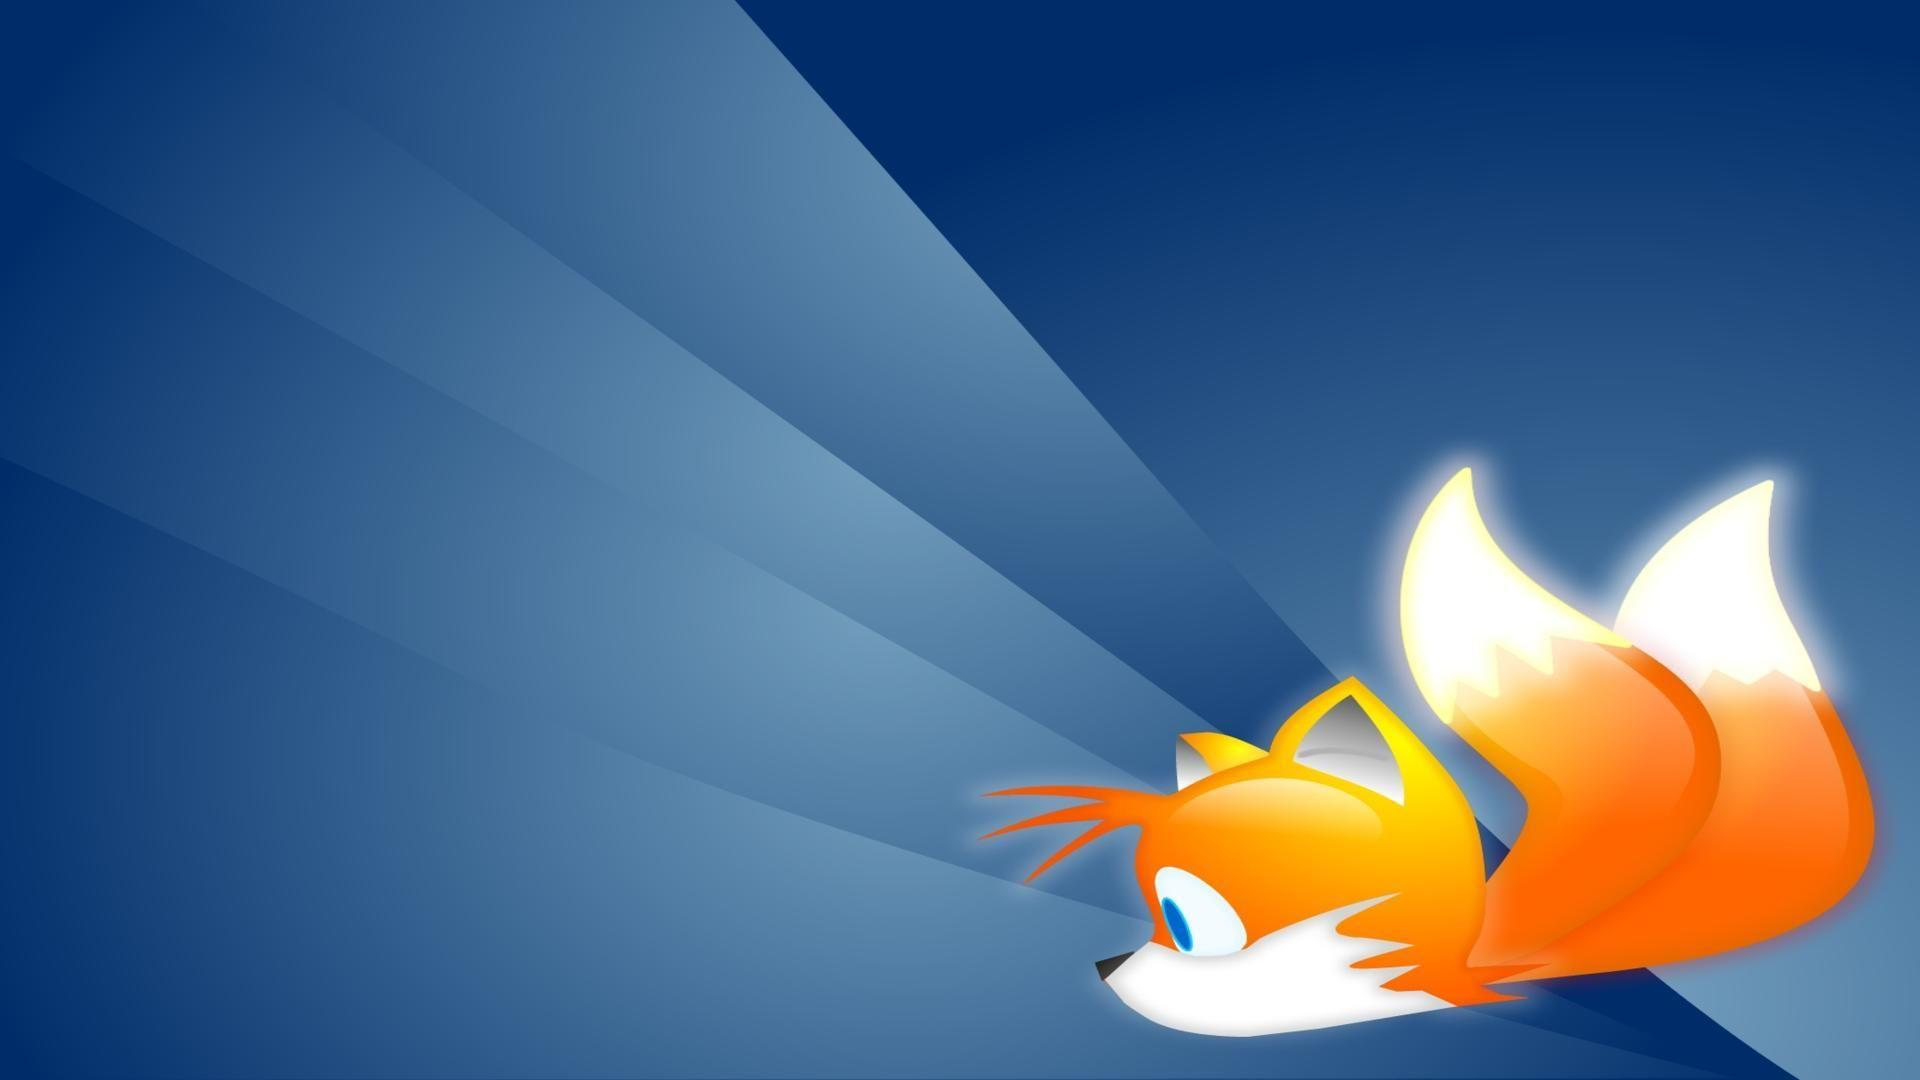 Geography Hd Wallpaper Firefox Browser Backgrounds Wallpaper Cave